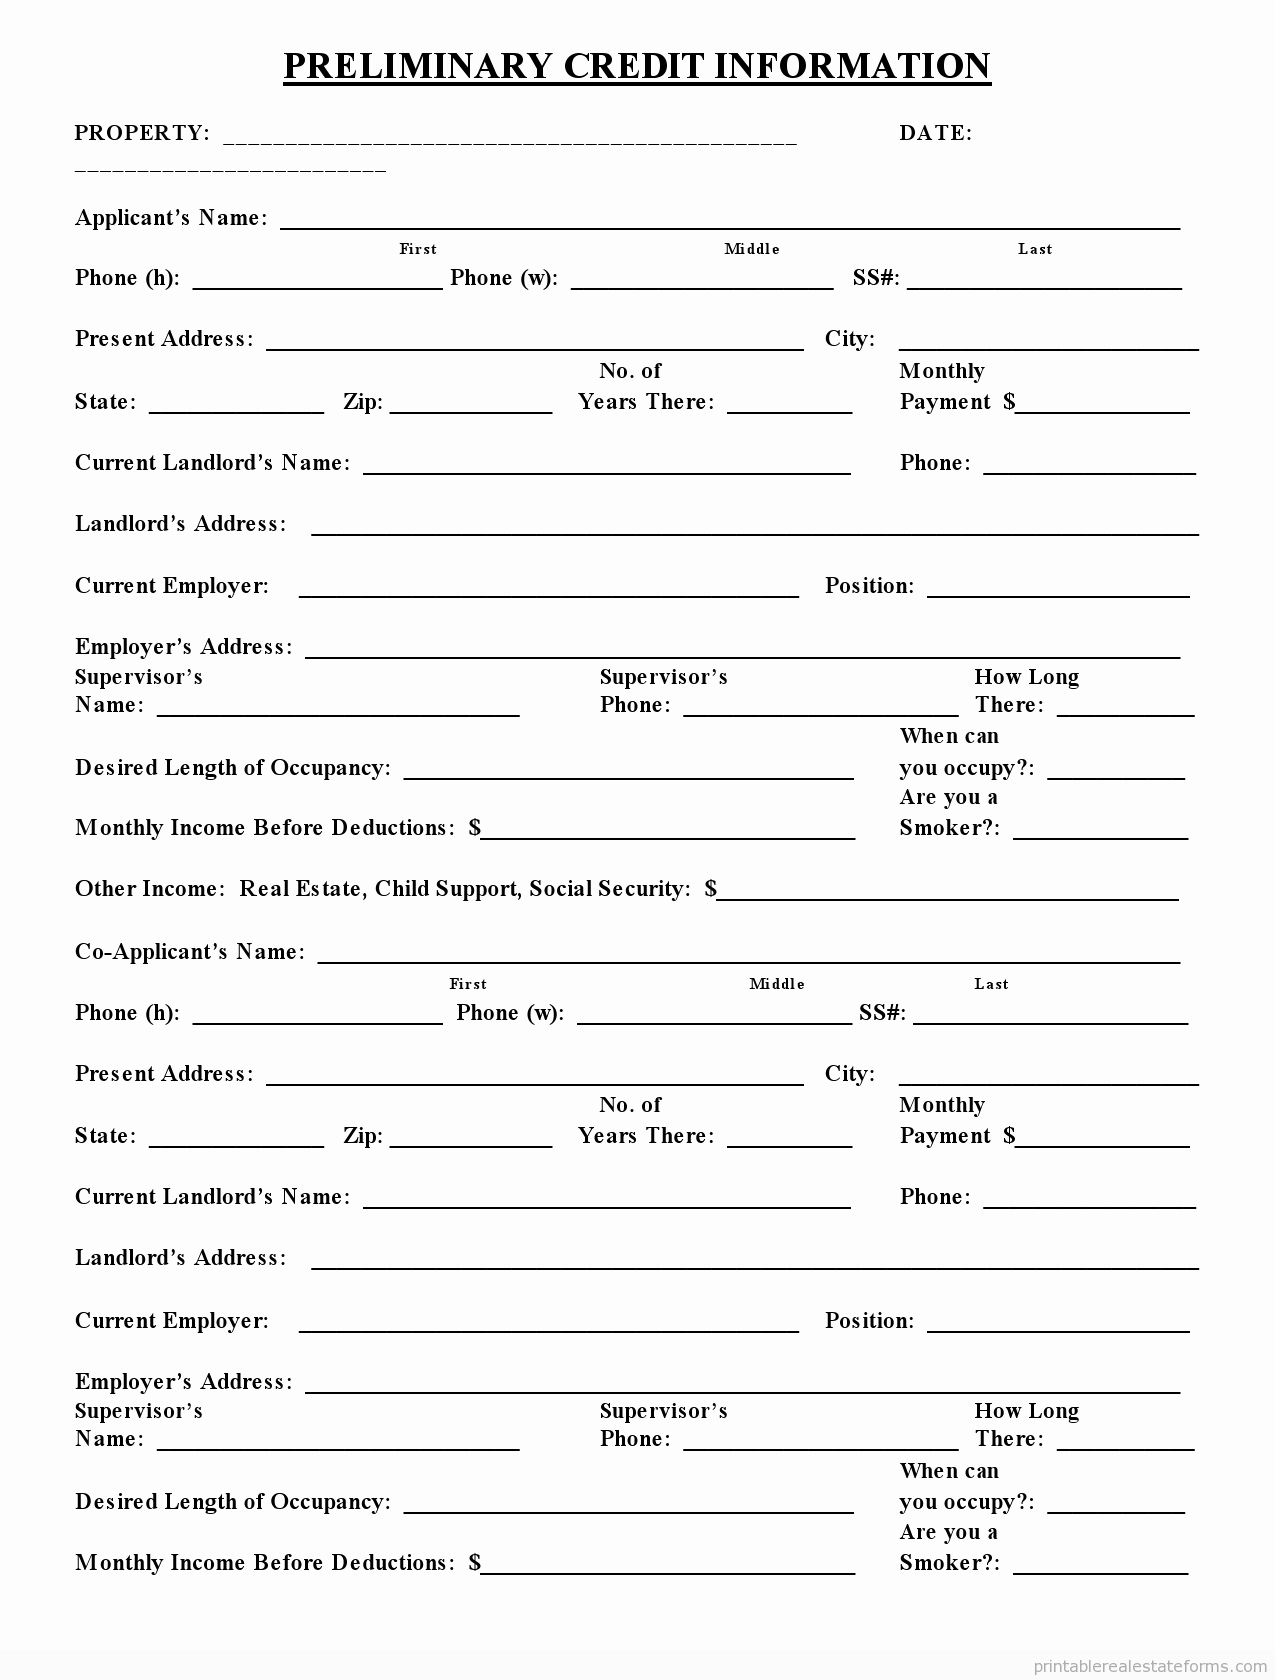 Credit Application form Pdf Fresh Free Printable Preliminary Credit Application form Pdf